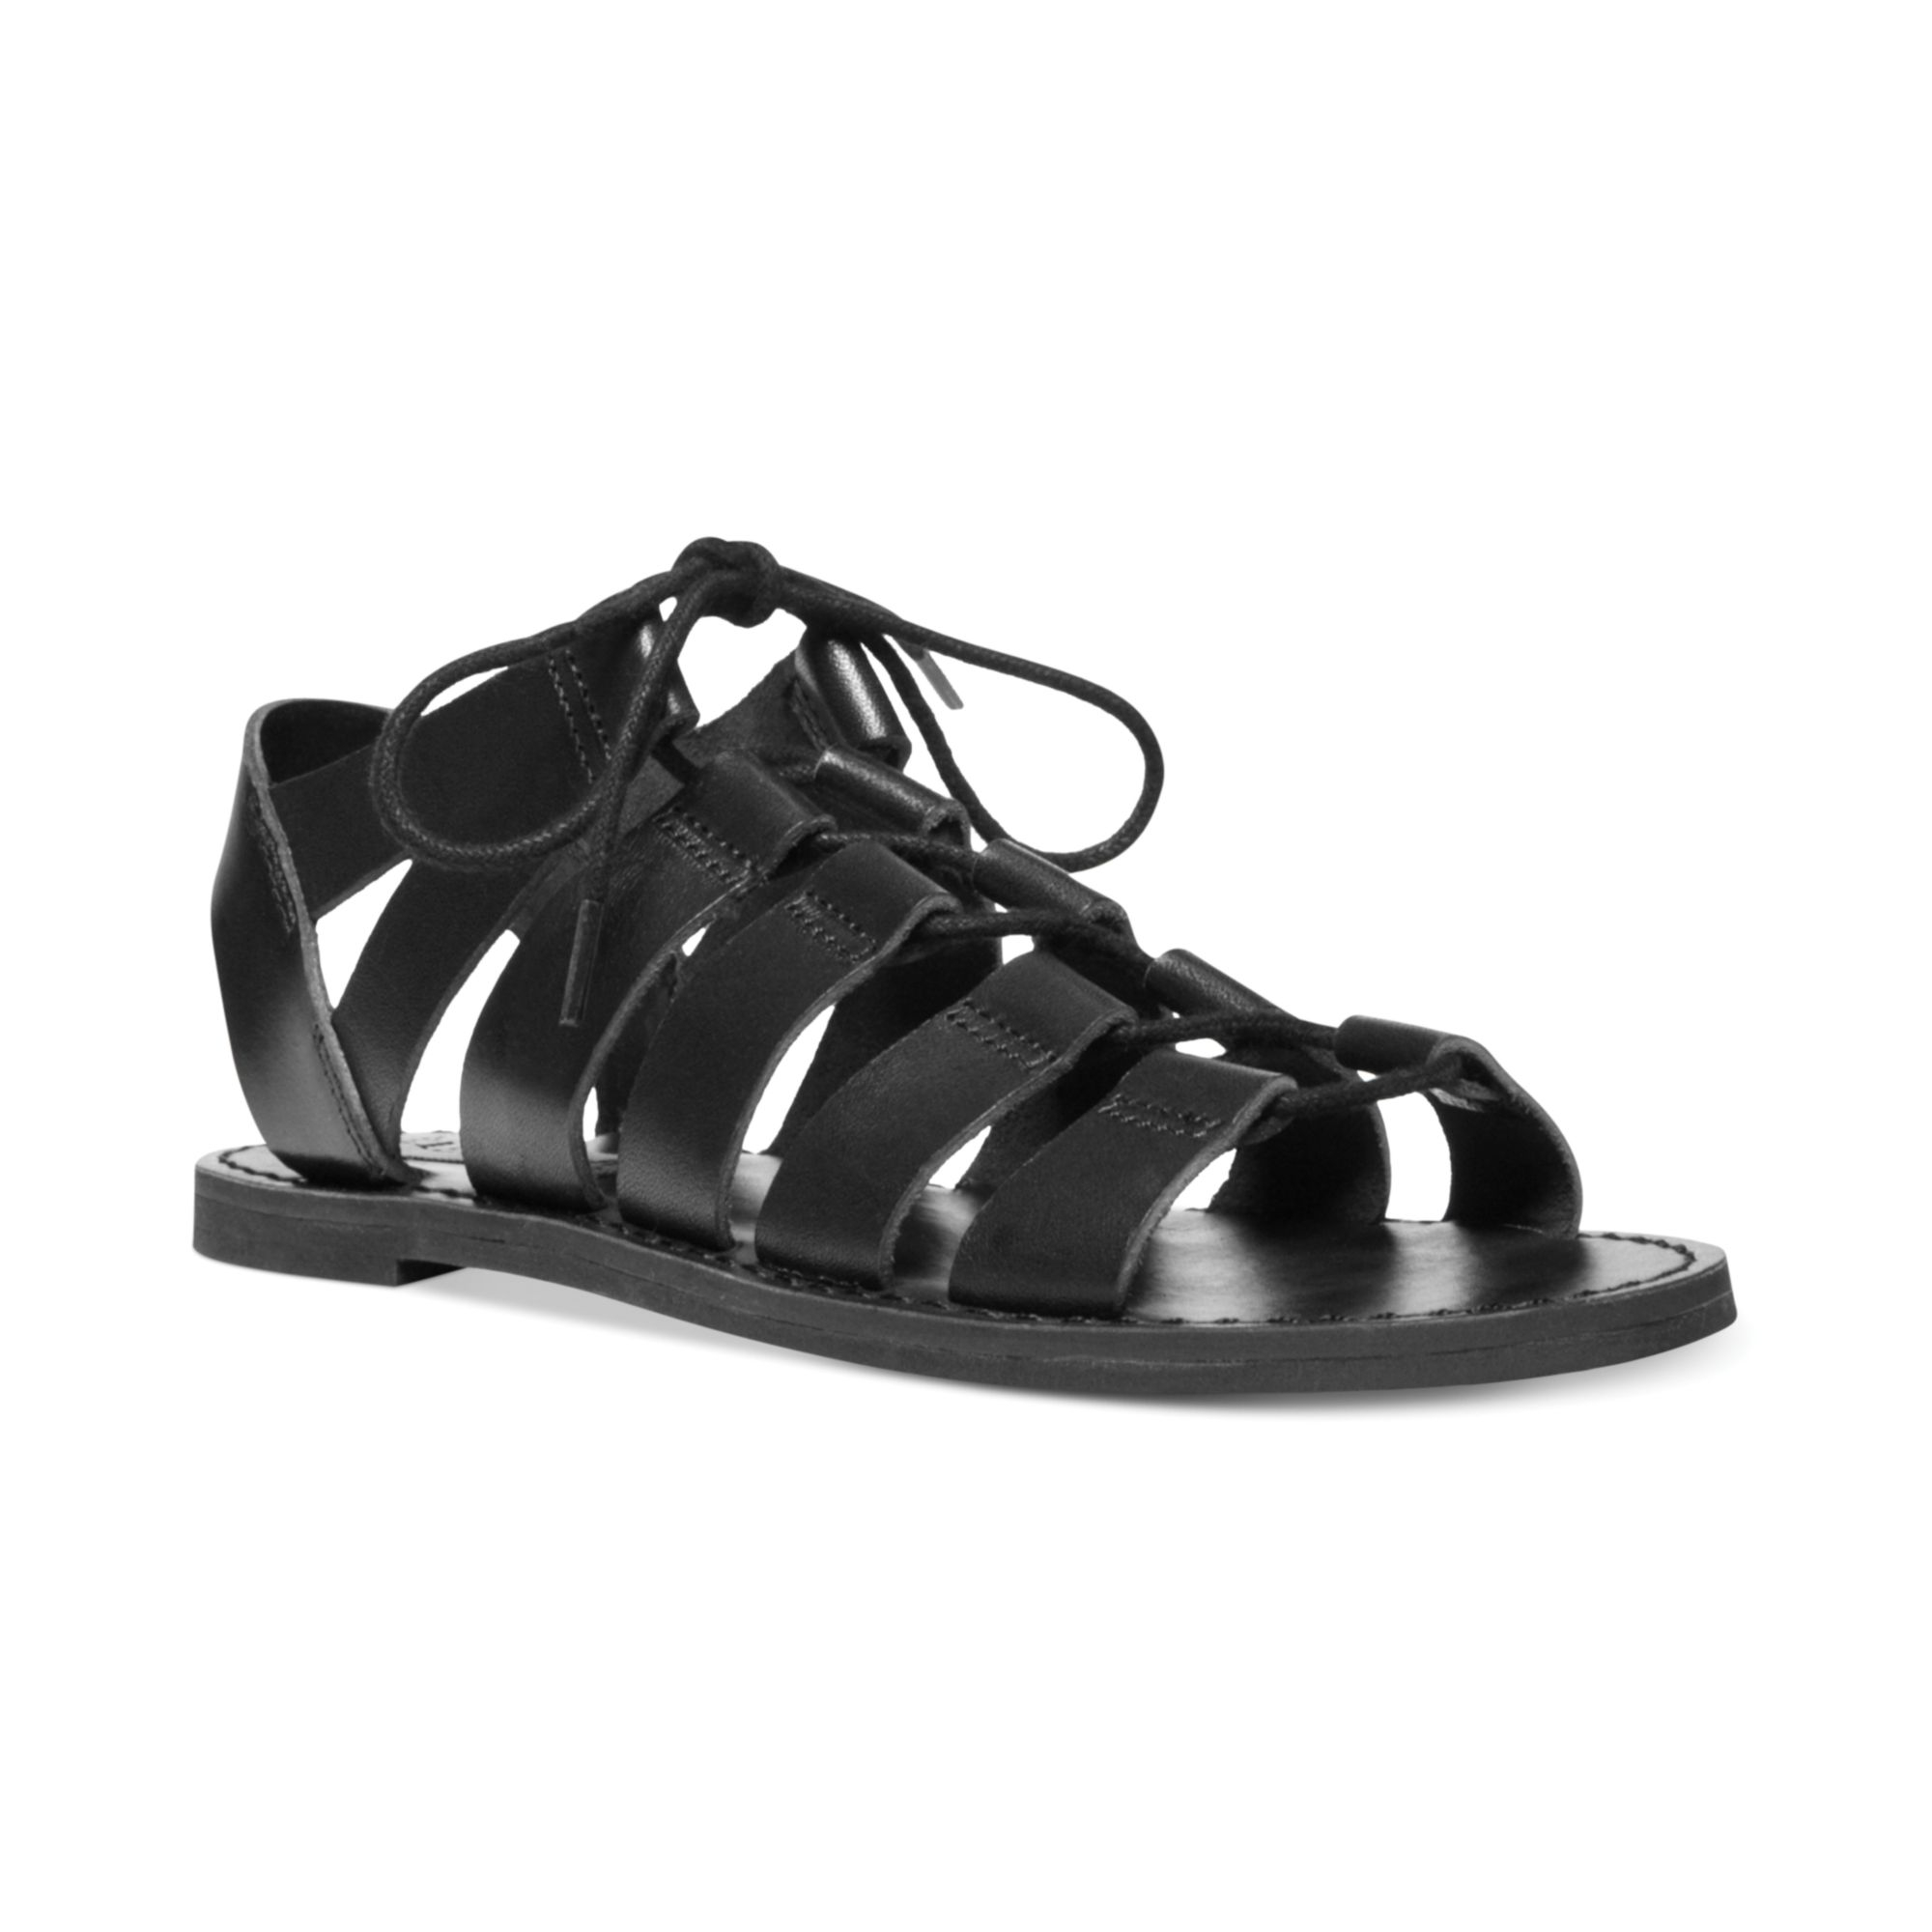 Steve Madden Womens Squidd Caged Flat Sandals In Black